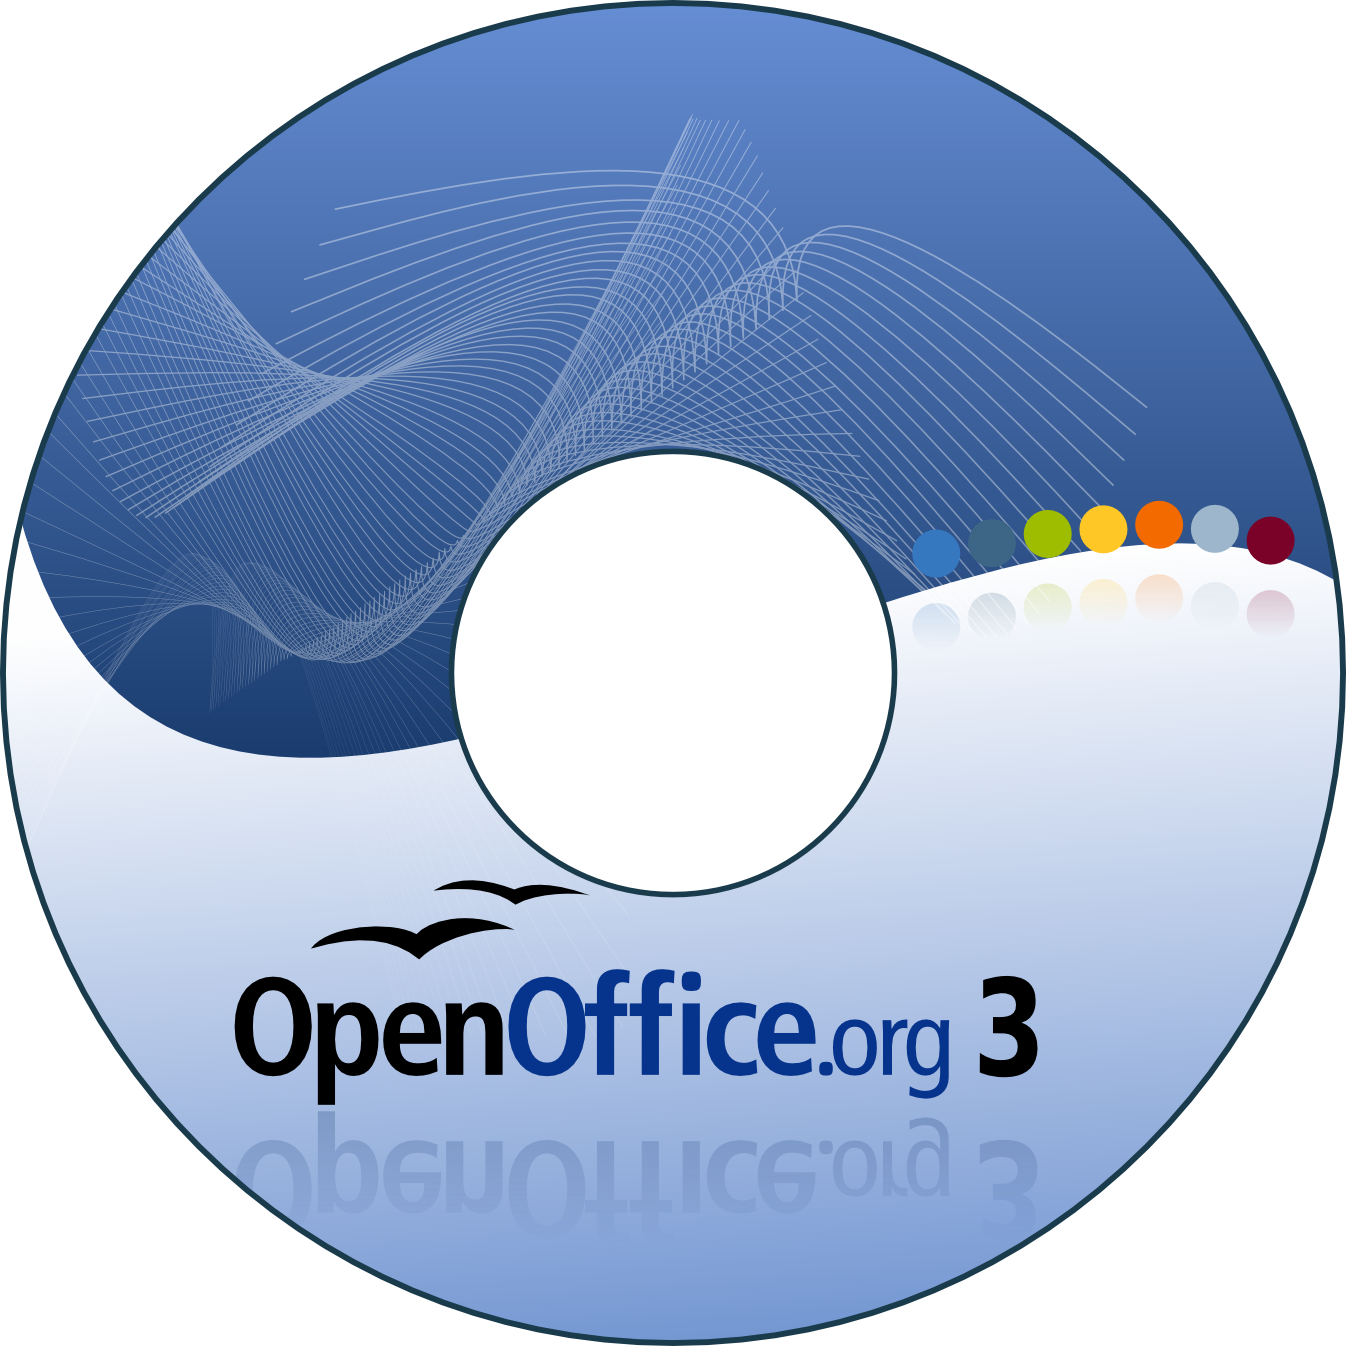 OpenOffice.CD Art previous versions